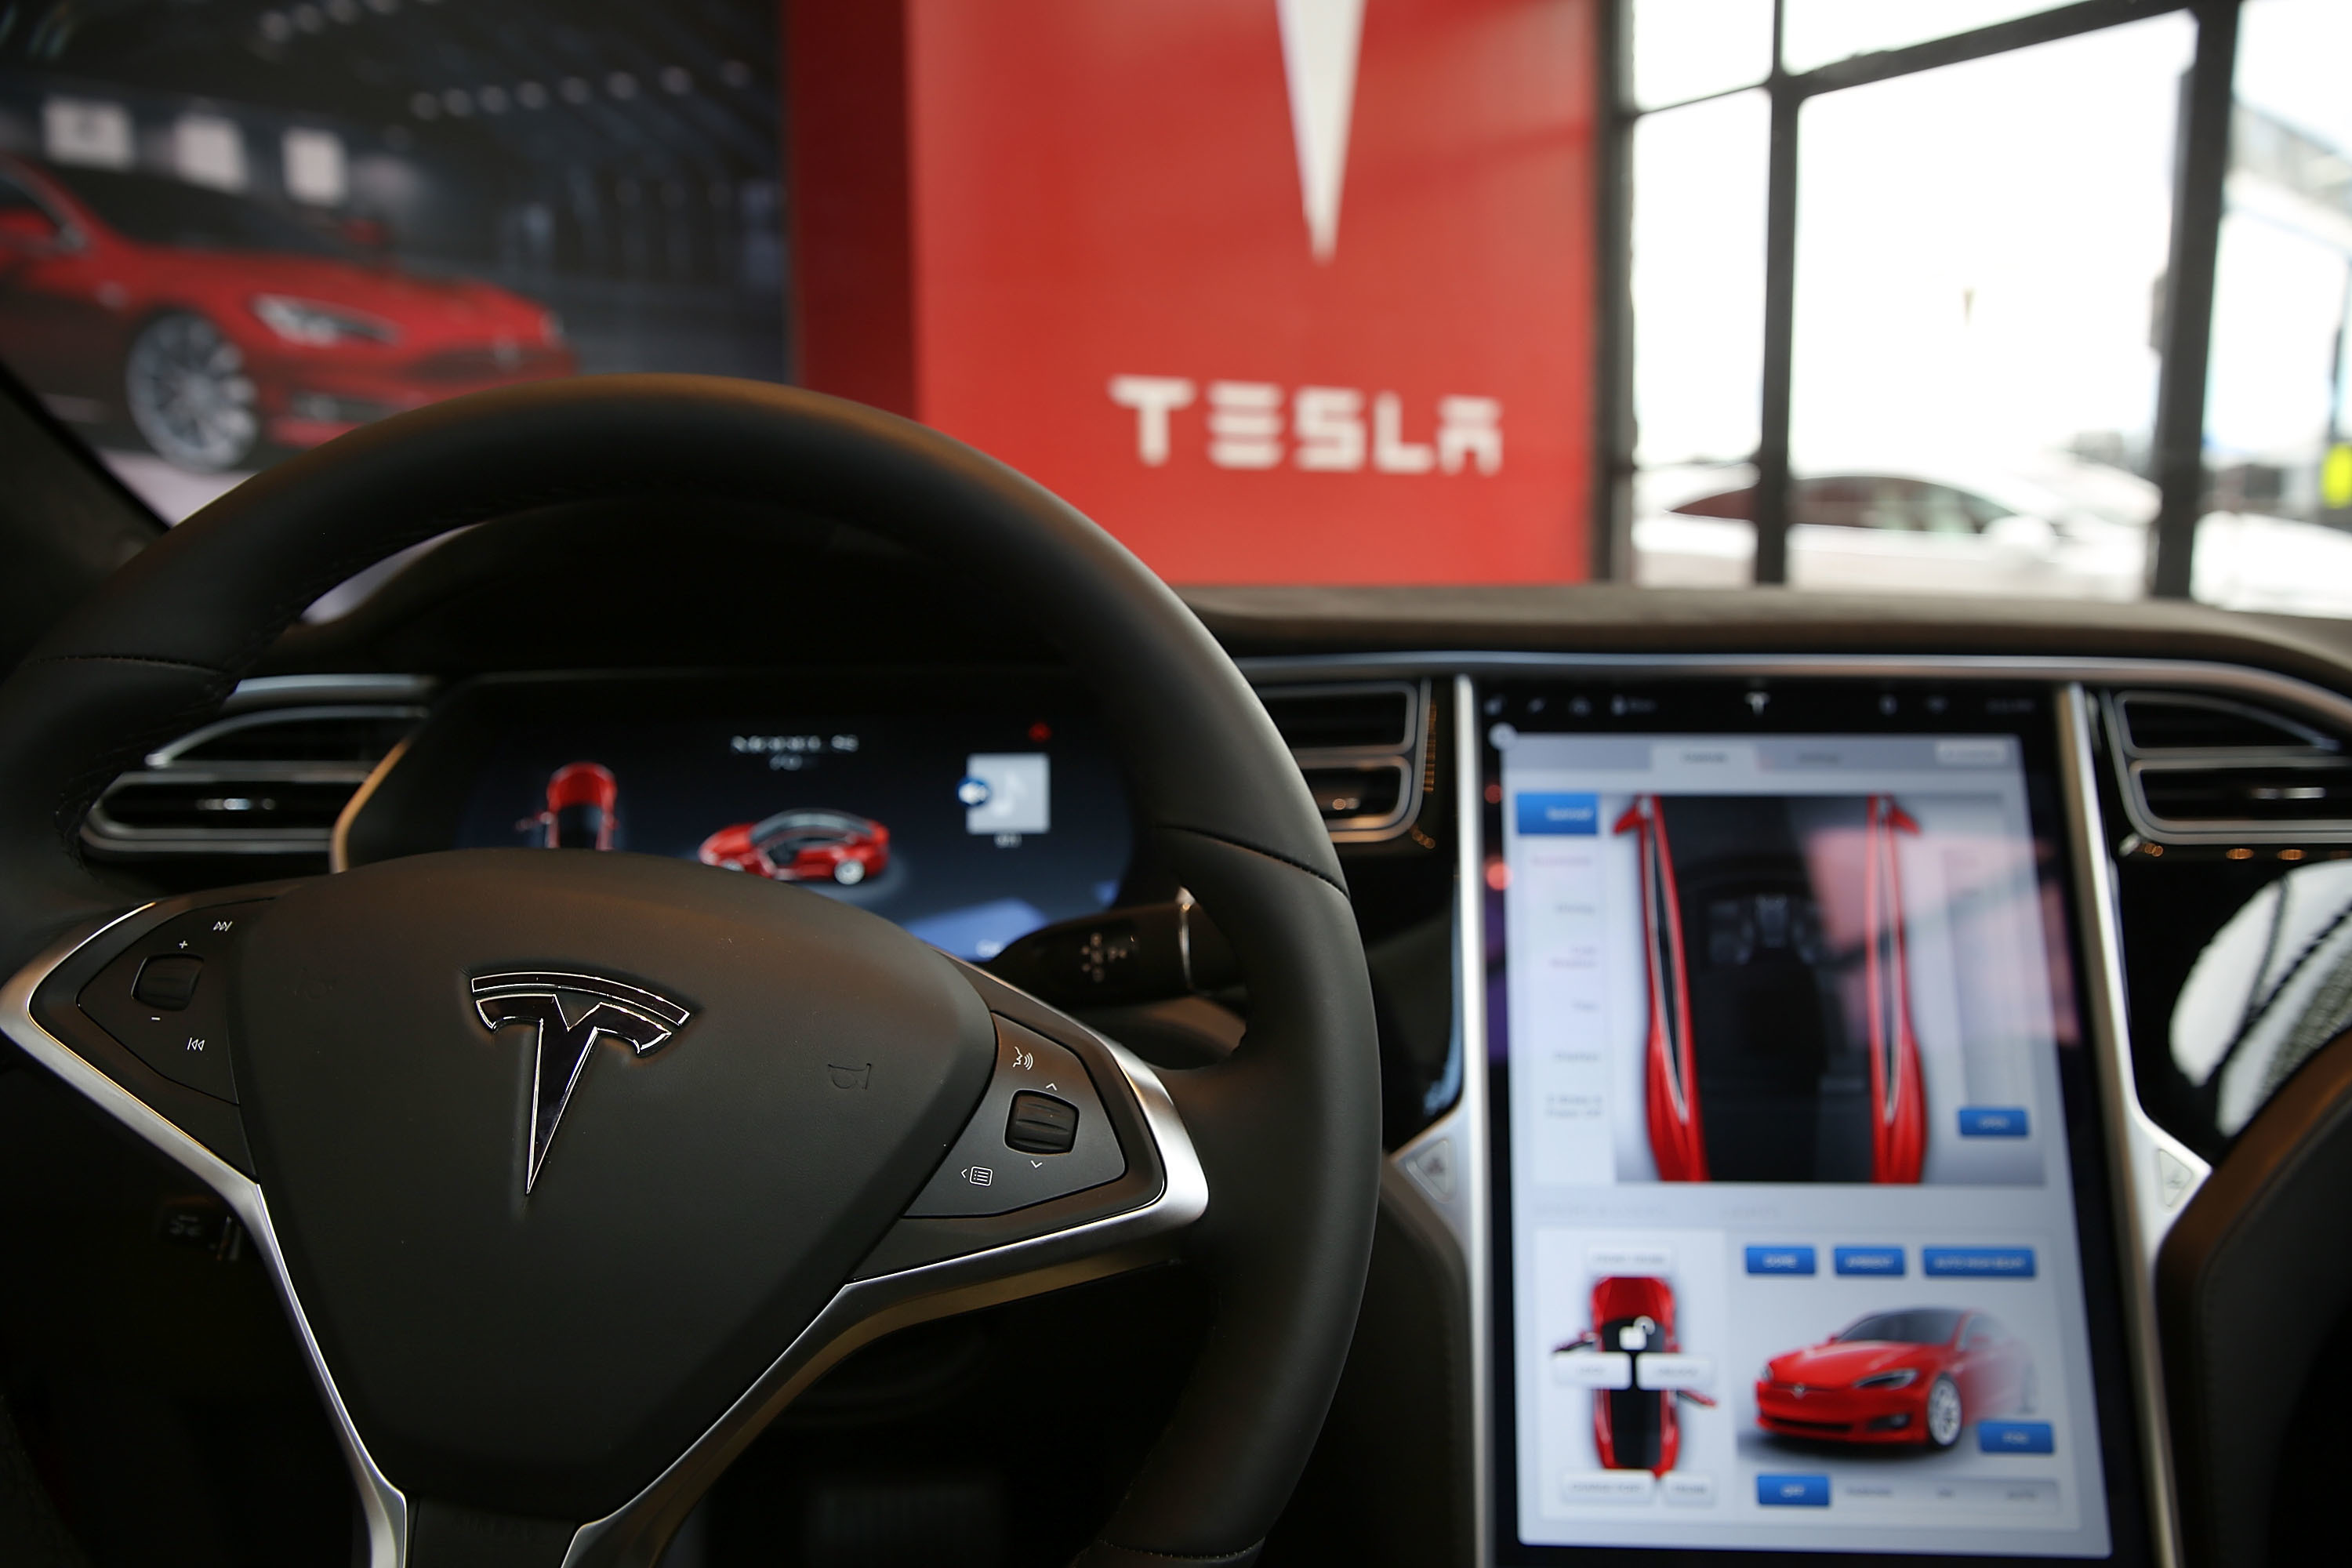 """Tesla's touch screen (on right) will now show you how many cars are charging up at a nearby """"Supercharger"""" charging station."""